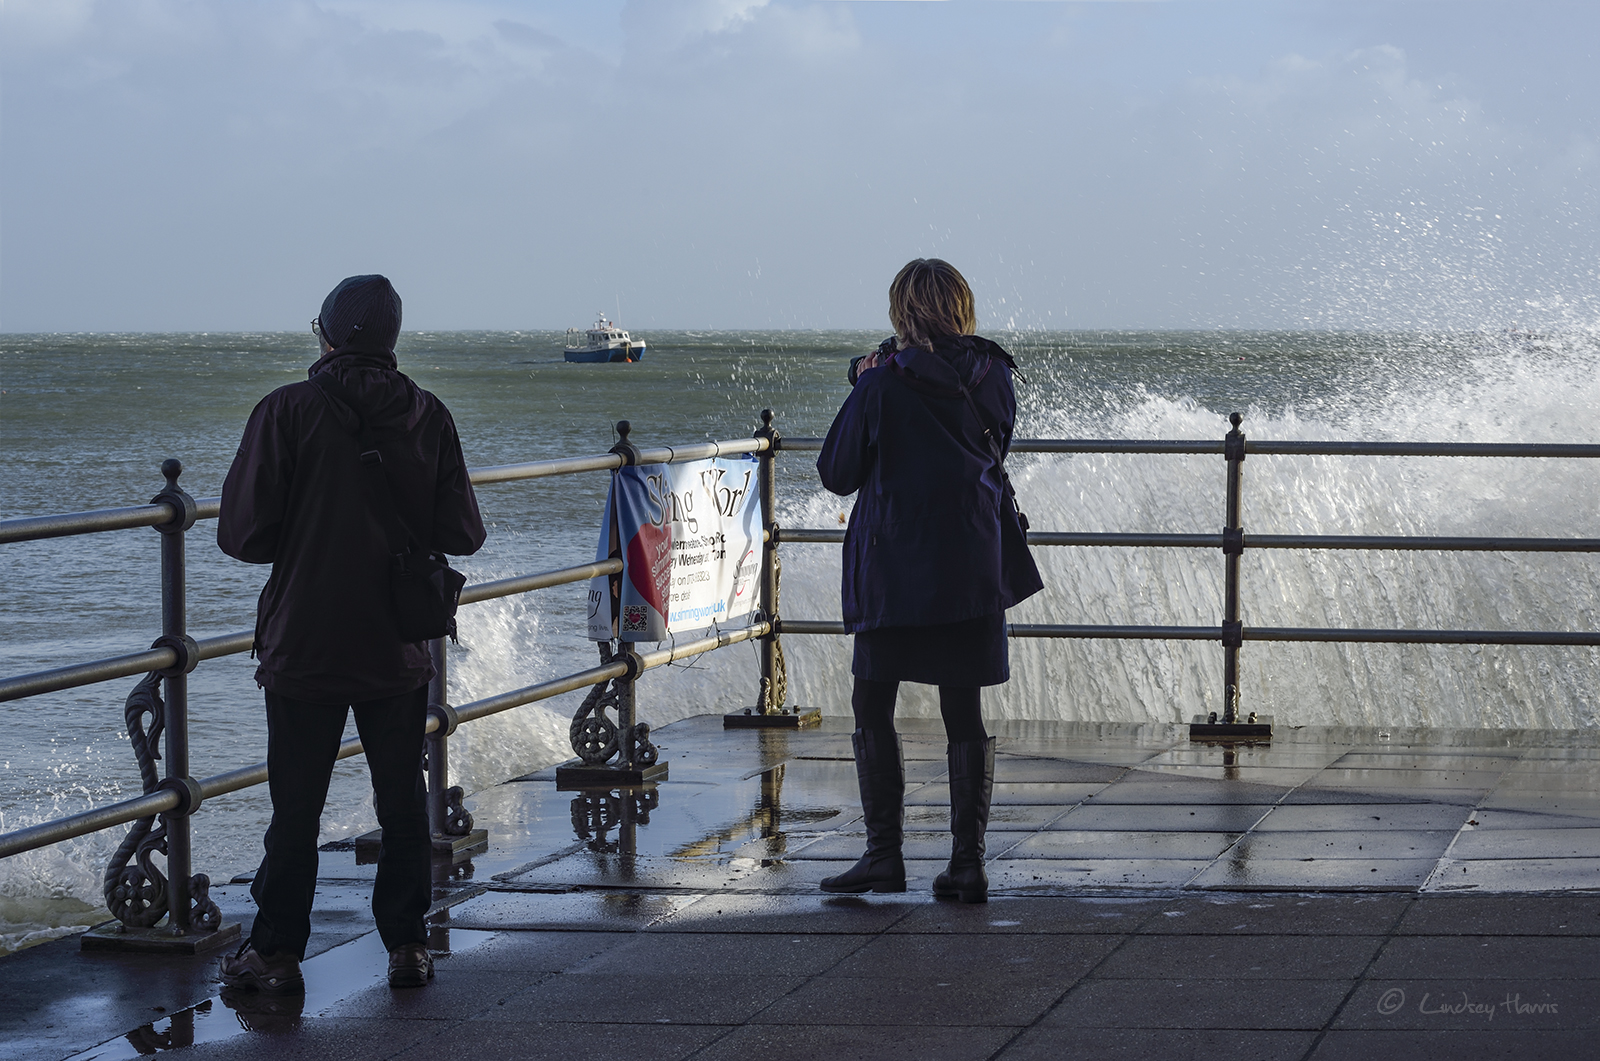 Photographers by the Mowlem Theatre, Swanage, during Storm Brian, 21st October 2017.